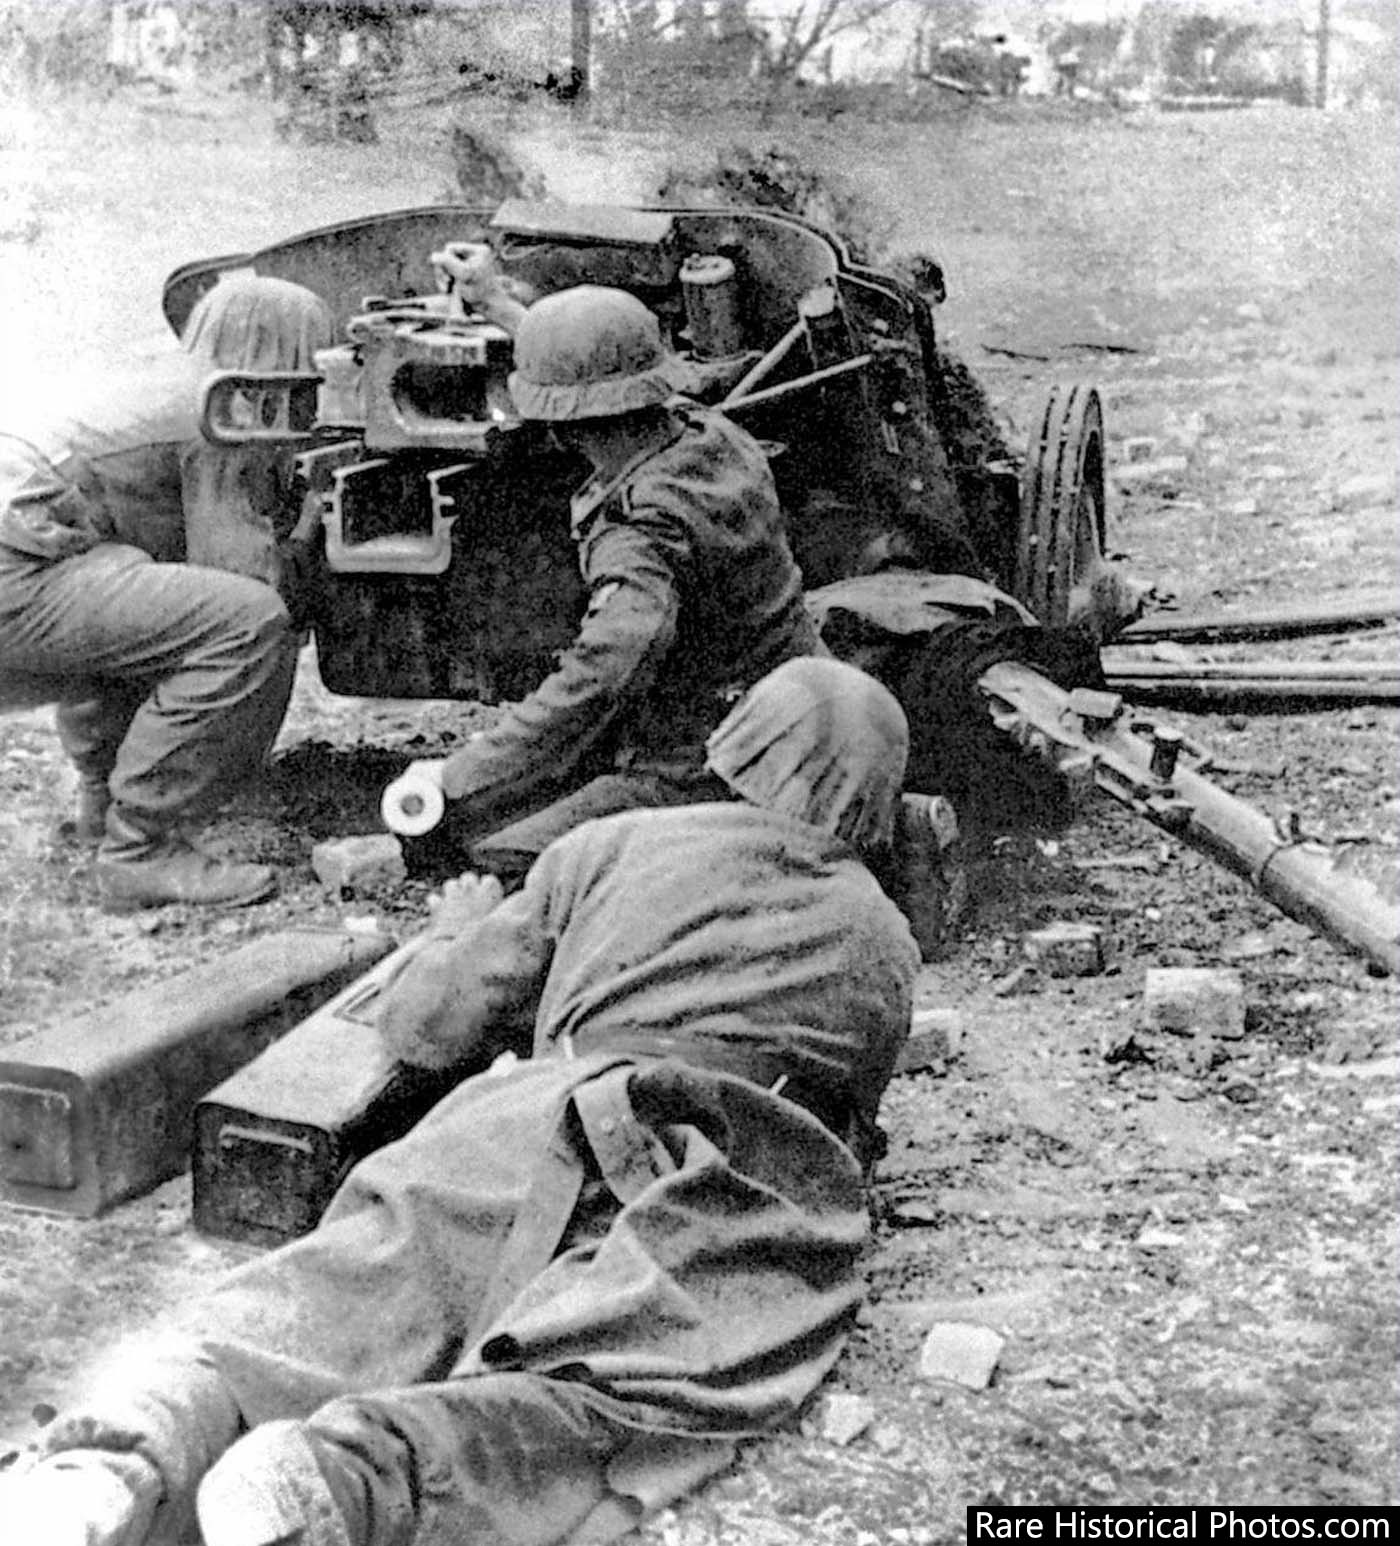 German soldiers at Stalingrad fire a 5 cm Pak 38 anti-tank gun.